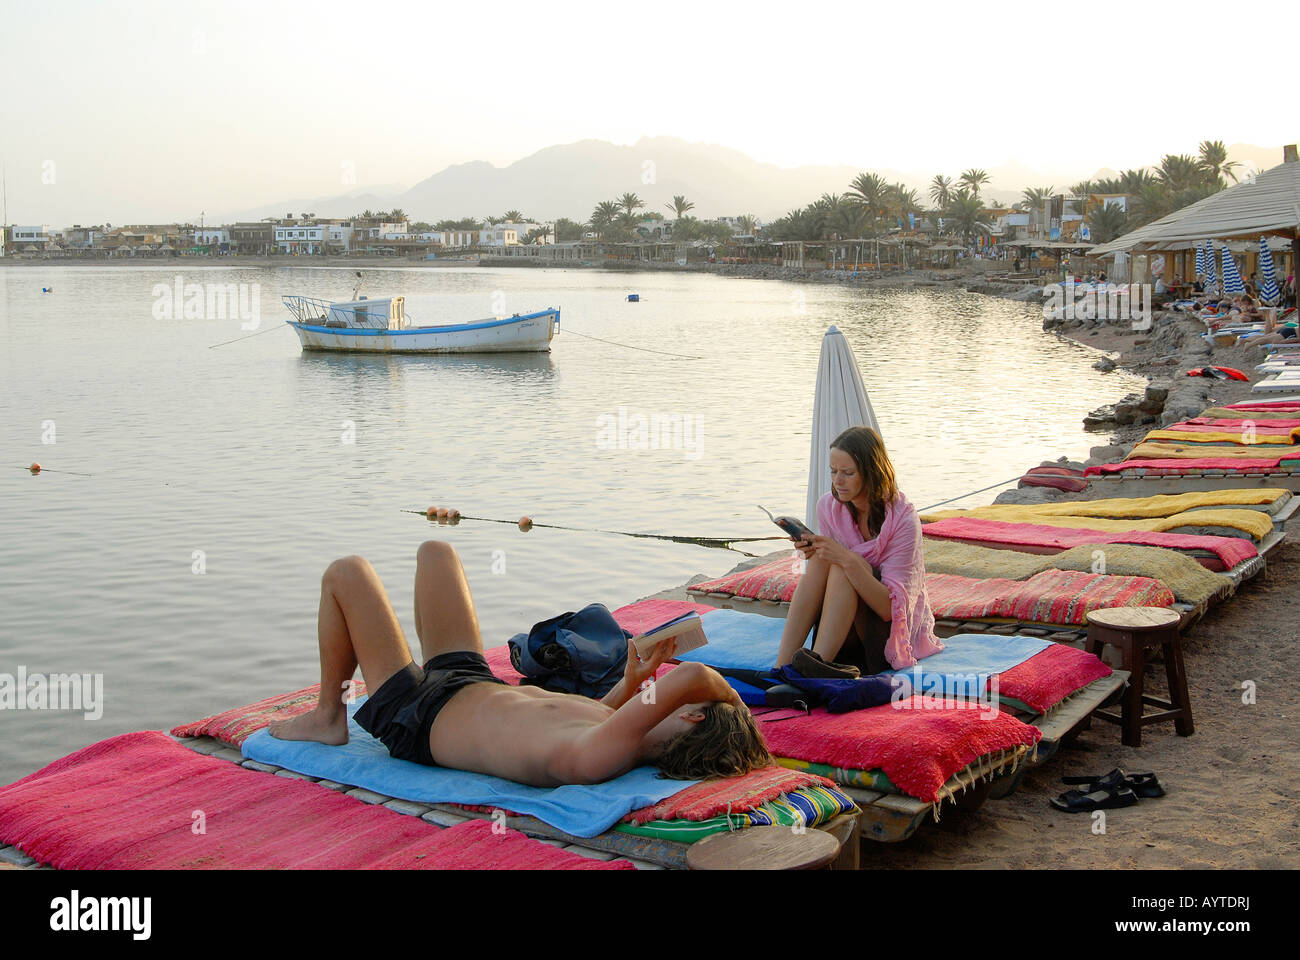 Tourists are enjoying the sunset at the beach in Dahab, Egypt - Stock Image